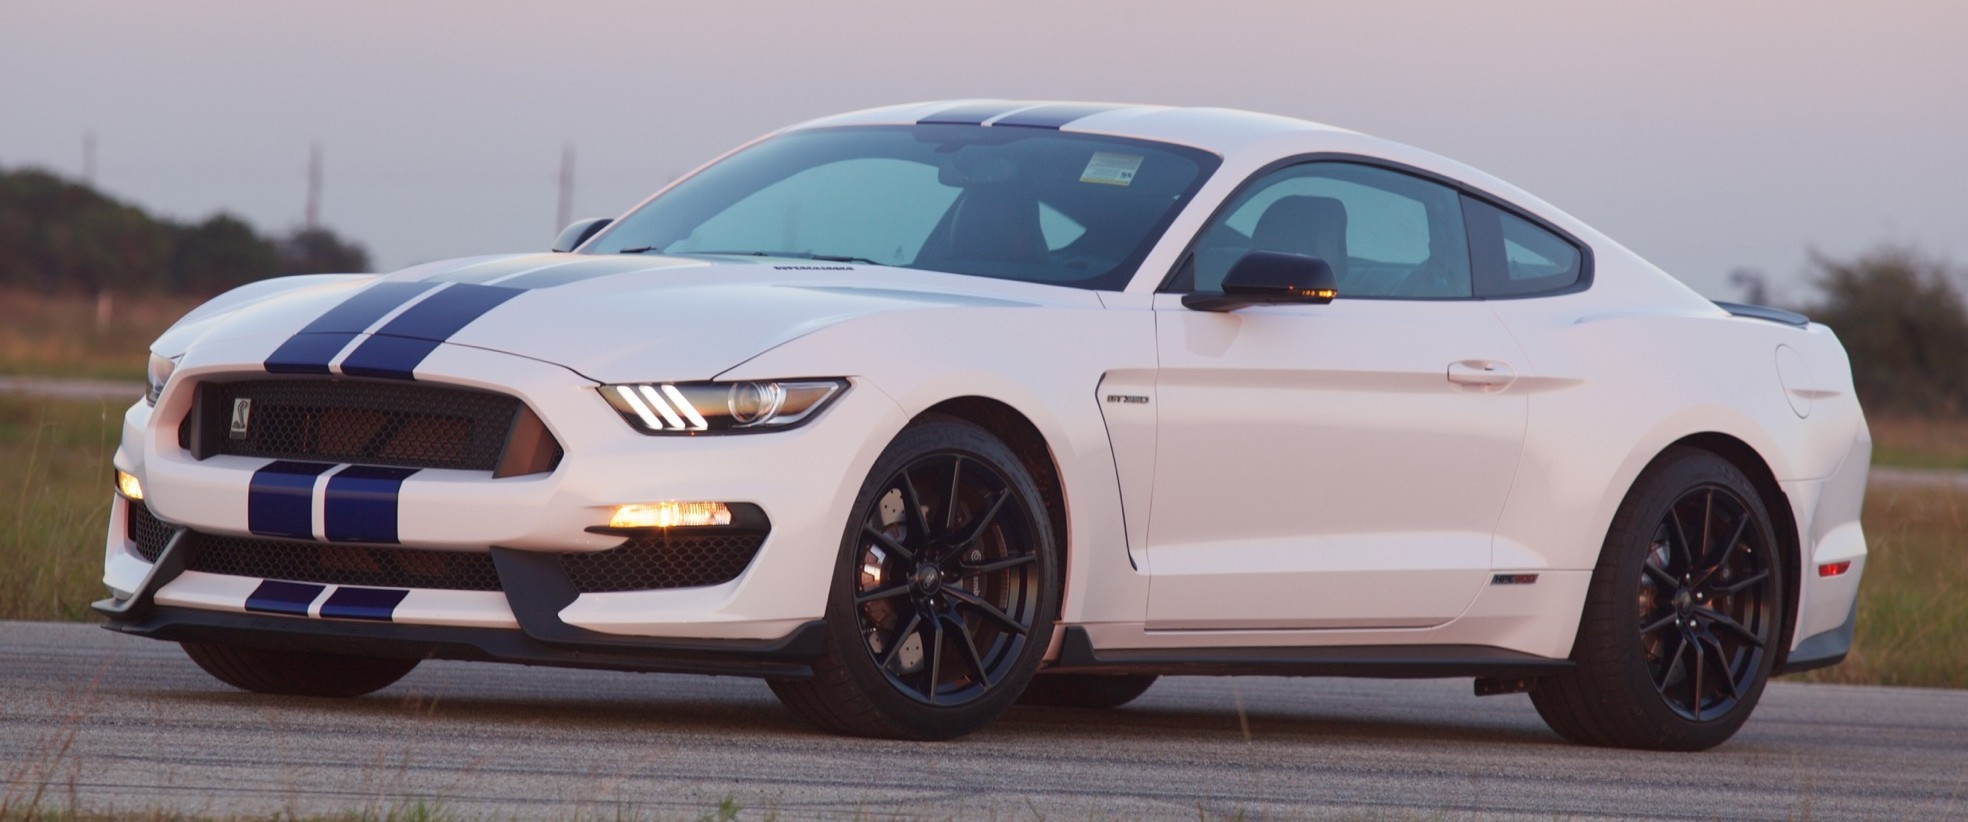 VIDEO: Mustang Shelby GT350 on Hennessey dyno Paul Tan - Image 421563